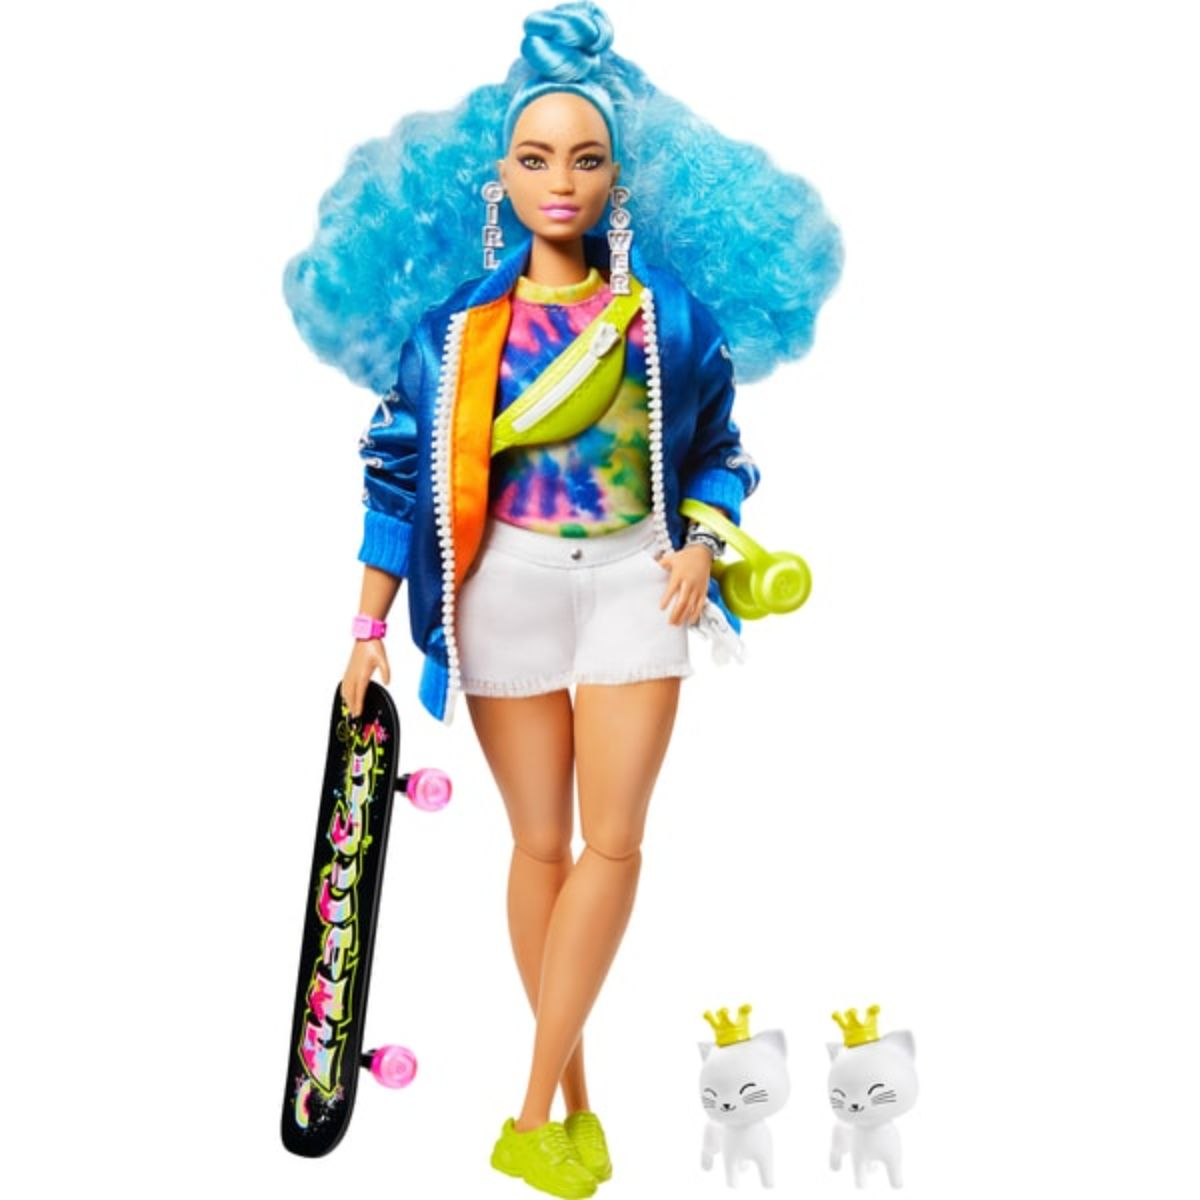 Papusa Barbie, Extra Style, Blue Curly Hair